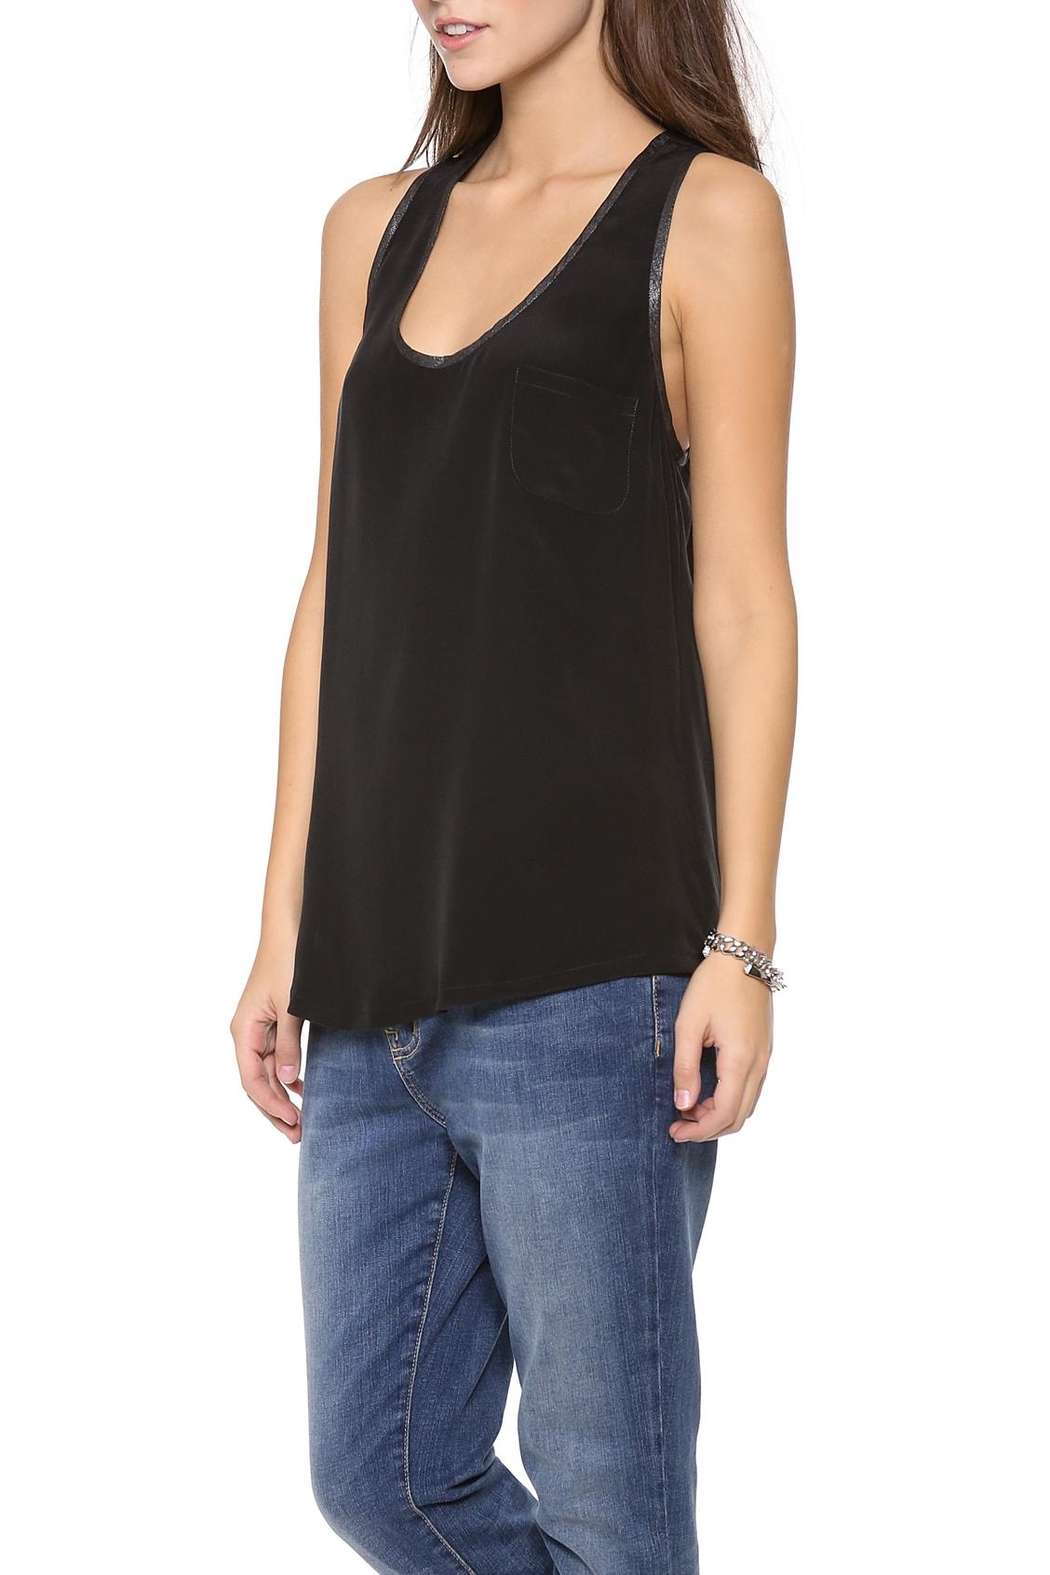 Joie Alicia D Top - Front Cropped Image